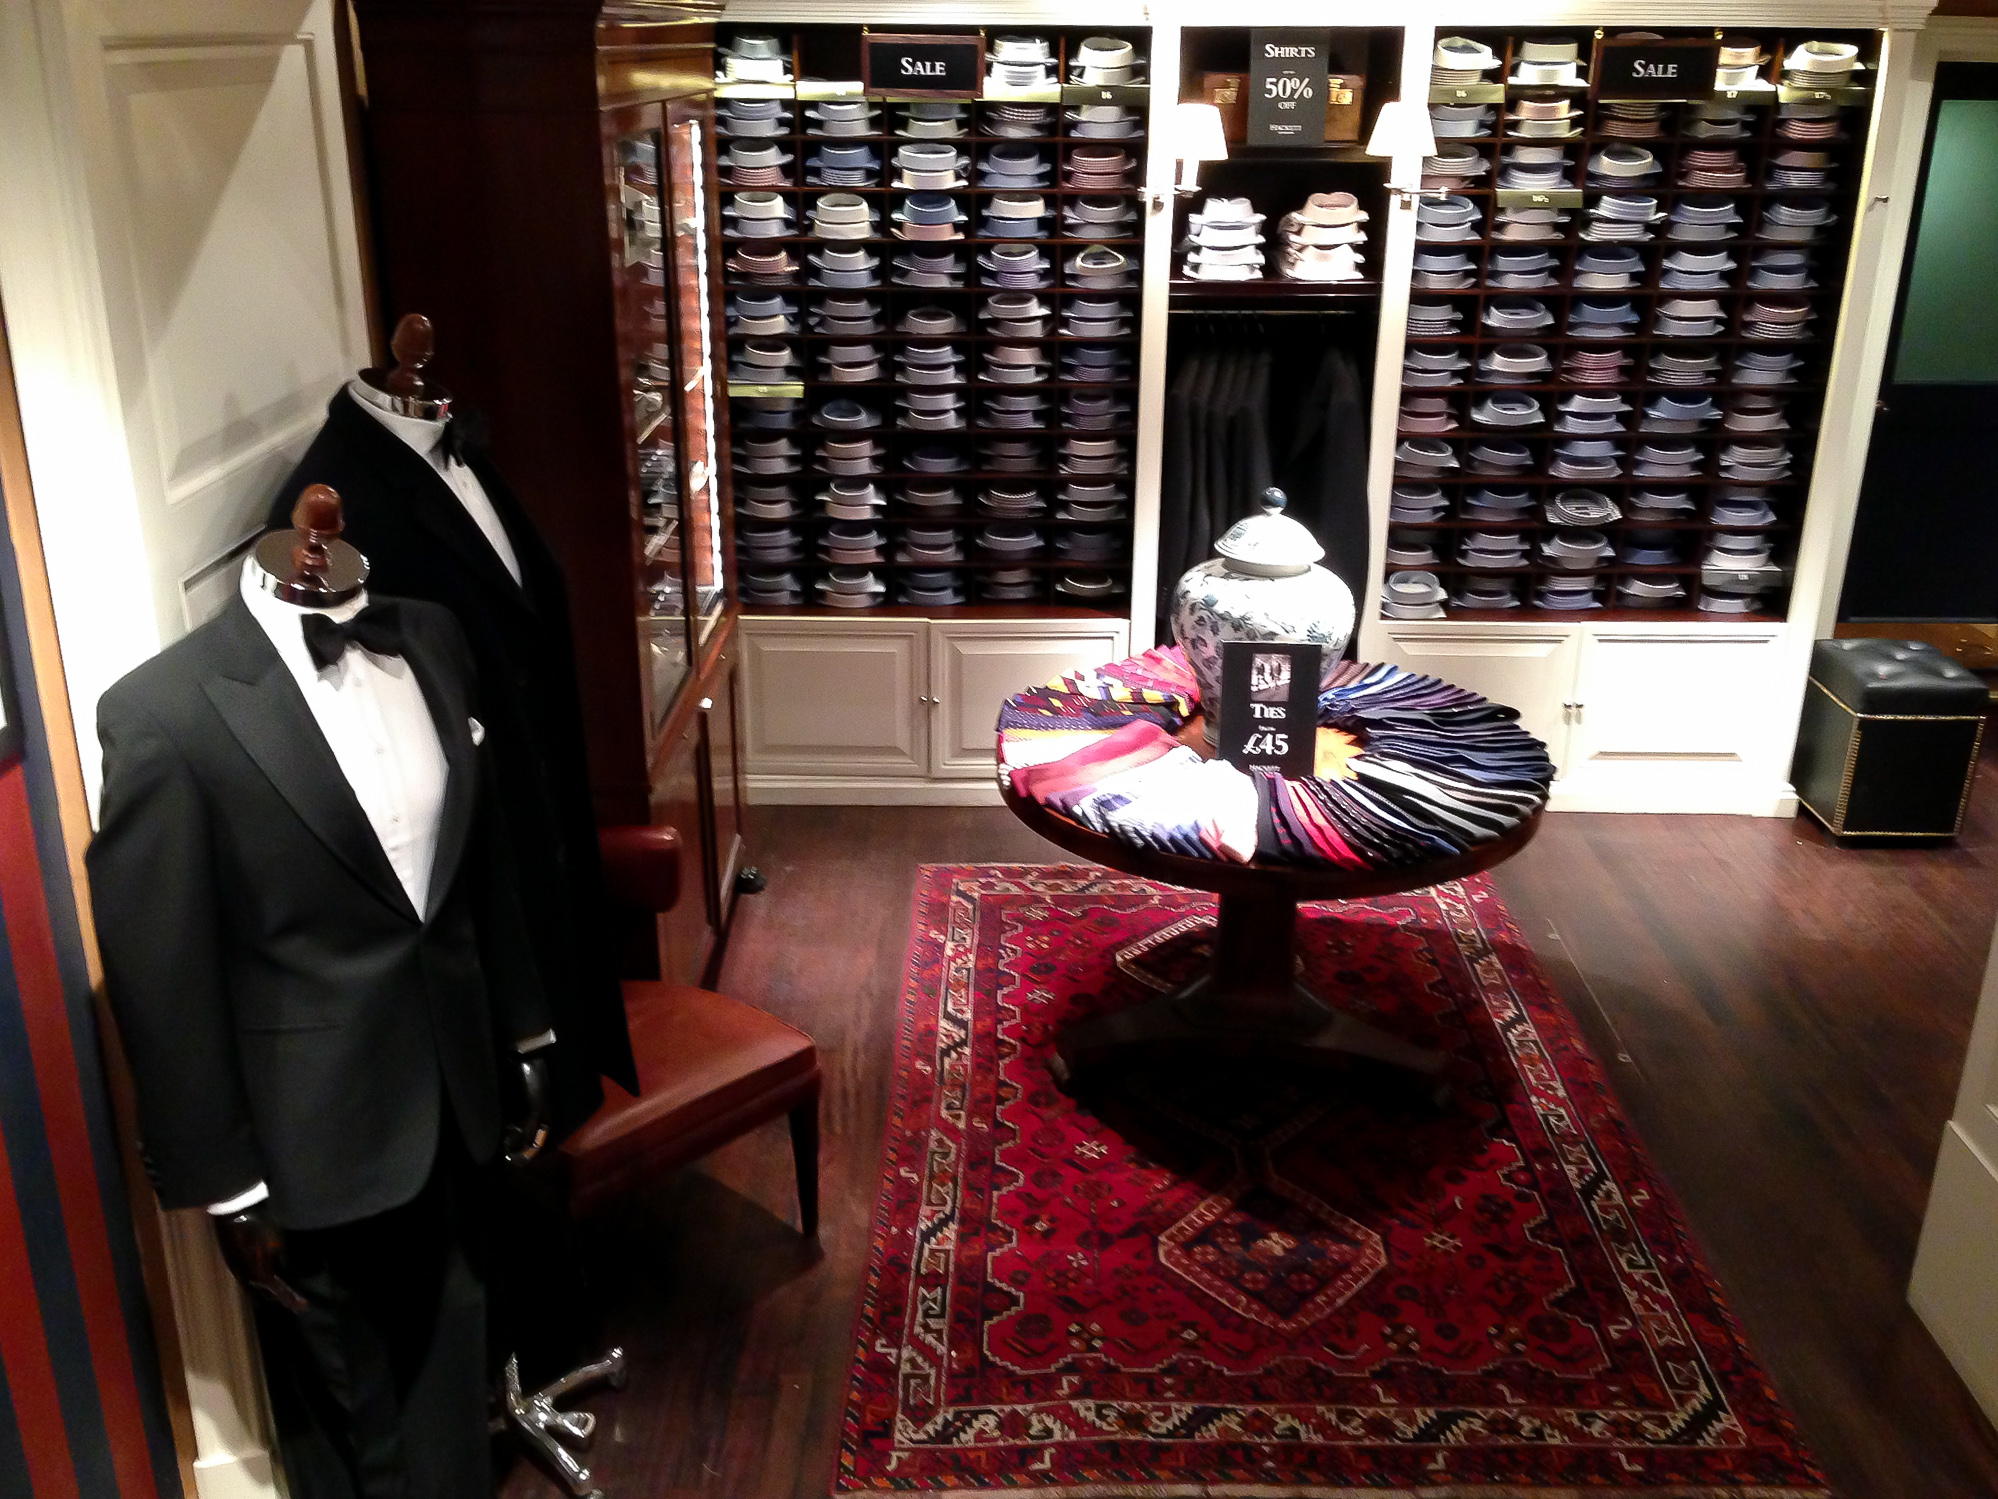 Formal menswear at Hackett in London. Photo by alphacityguides.